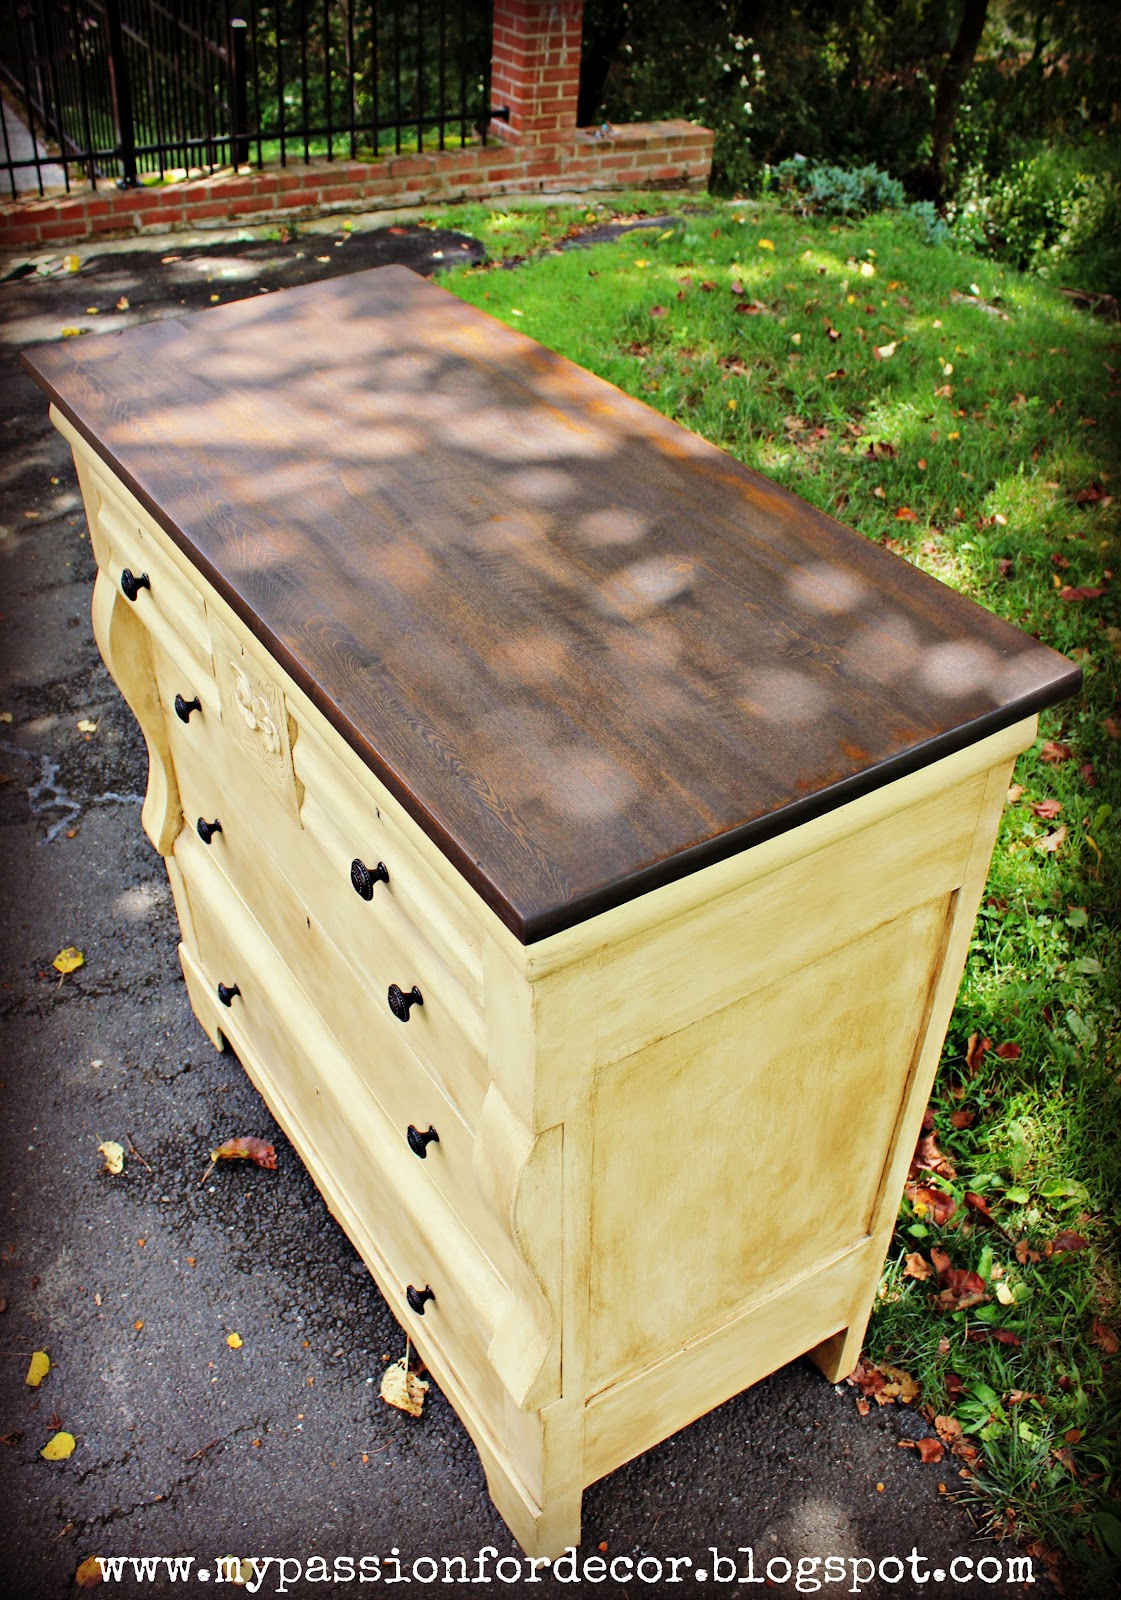 My Passion For Decor: Creamy Butter Yellow Dresser